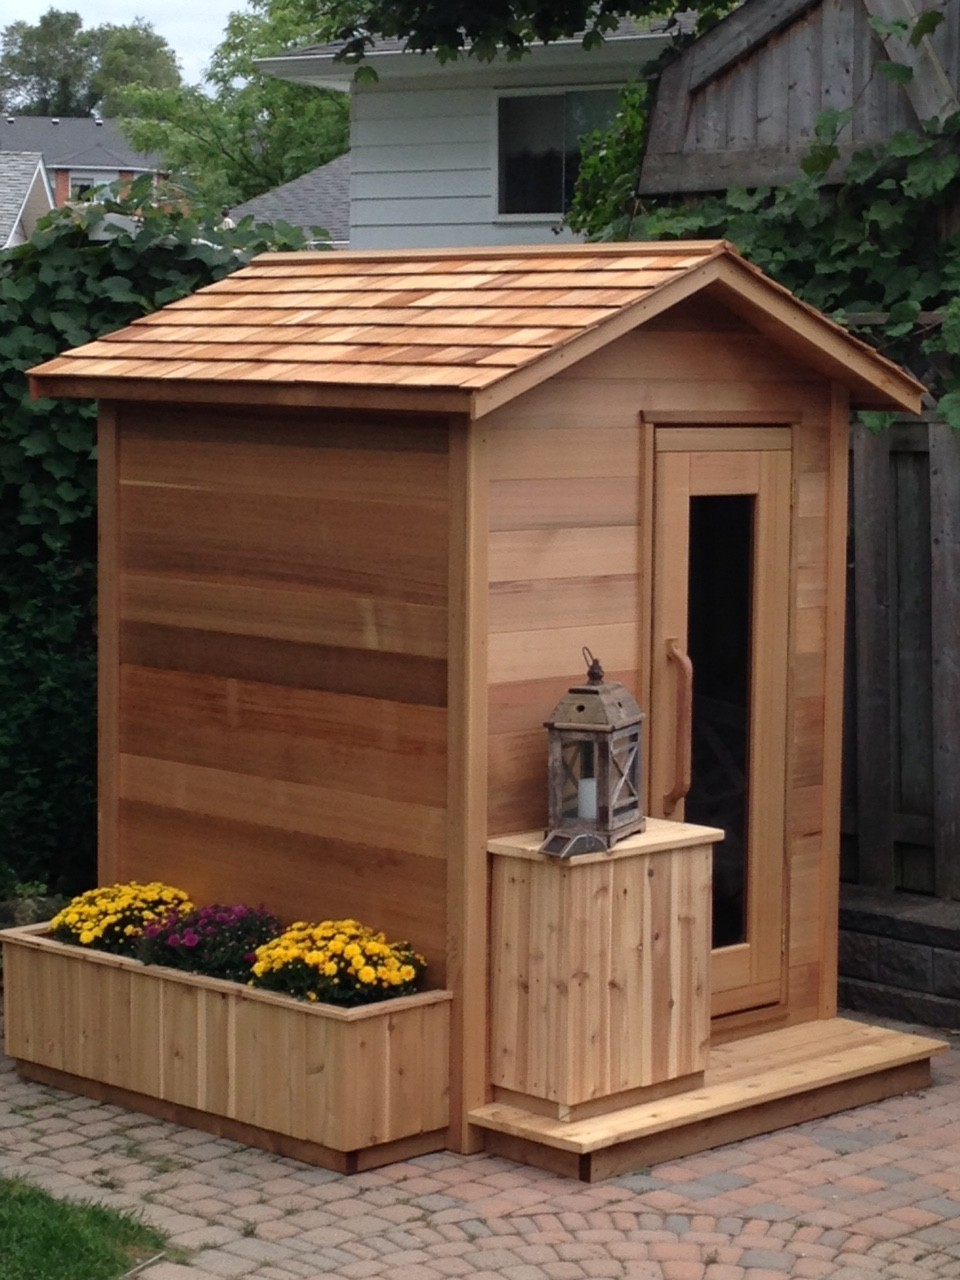 Sauna Outdoor Outdoor Sauna Kits For 3-4 Person – Steam Showers,shower ...